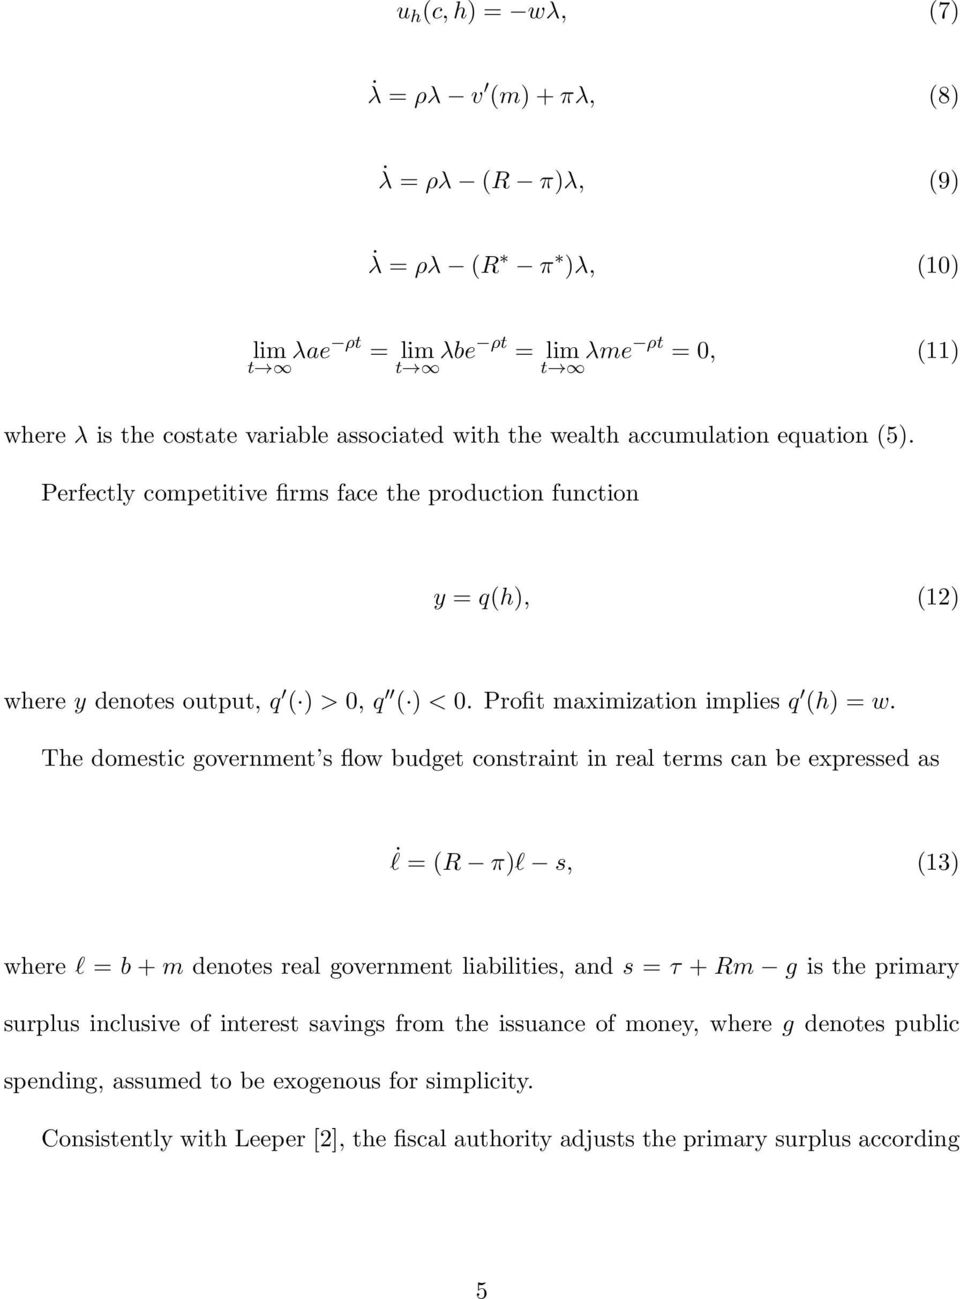 The domestic government s flow budget constraint in real terms can be expressed as l = (R π)l s, (13) where l = b + m denotes real government liabilities, and s = τ + Rm g is the primary surplus